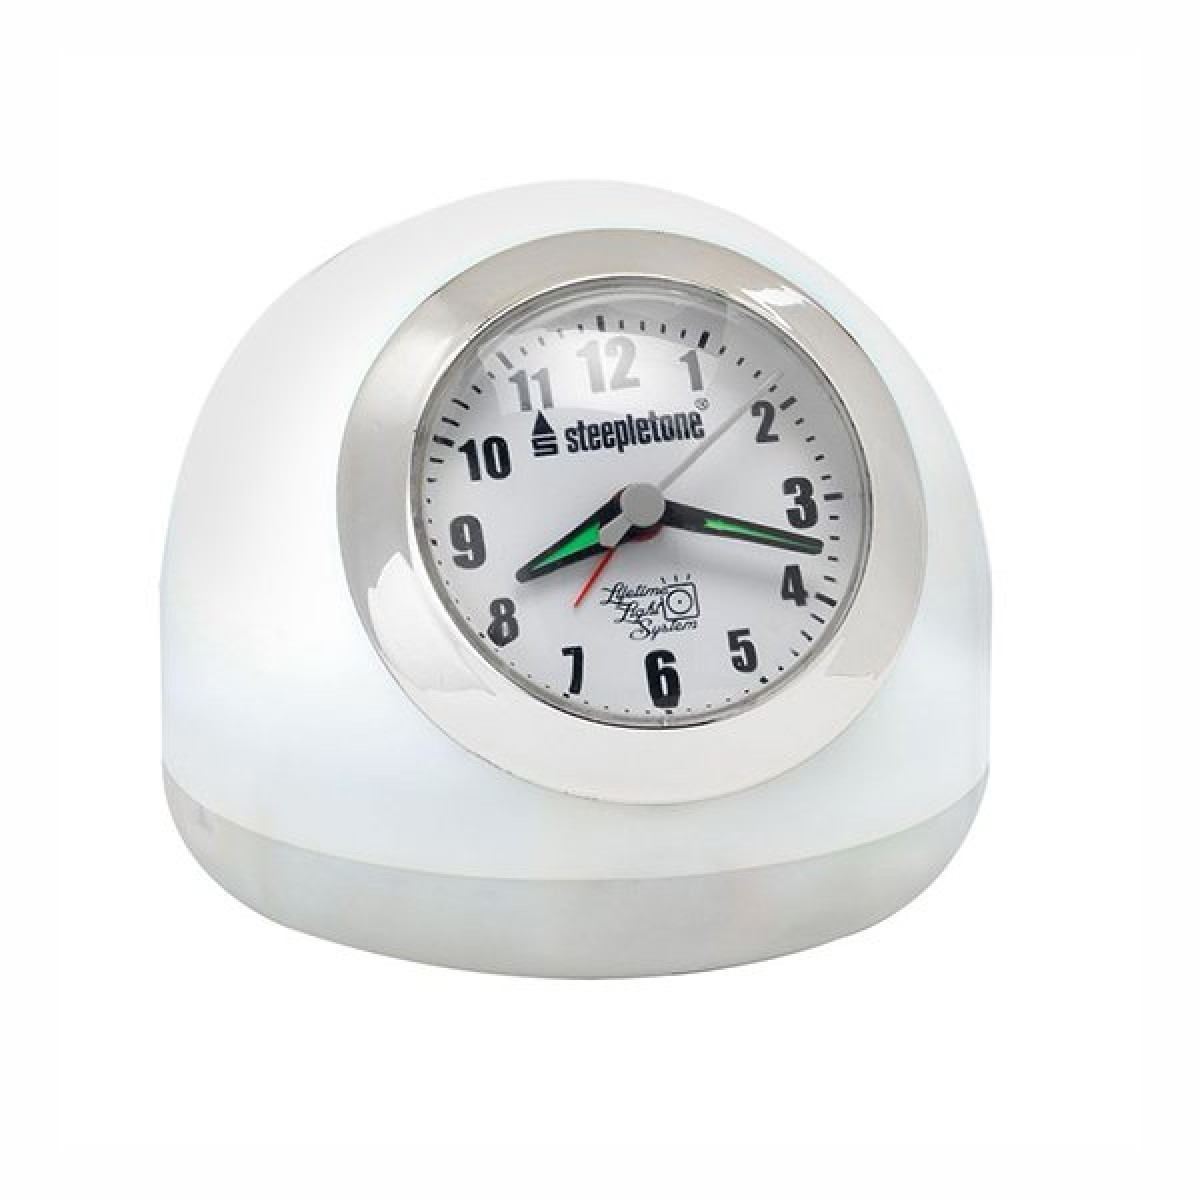 Lot 16169 - V Brand New LED Touch Controlled Clock Alarm With Radio & Touch Control White & Mood Lighting (Radio